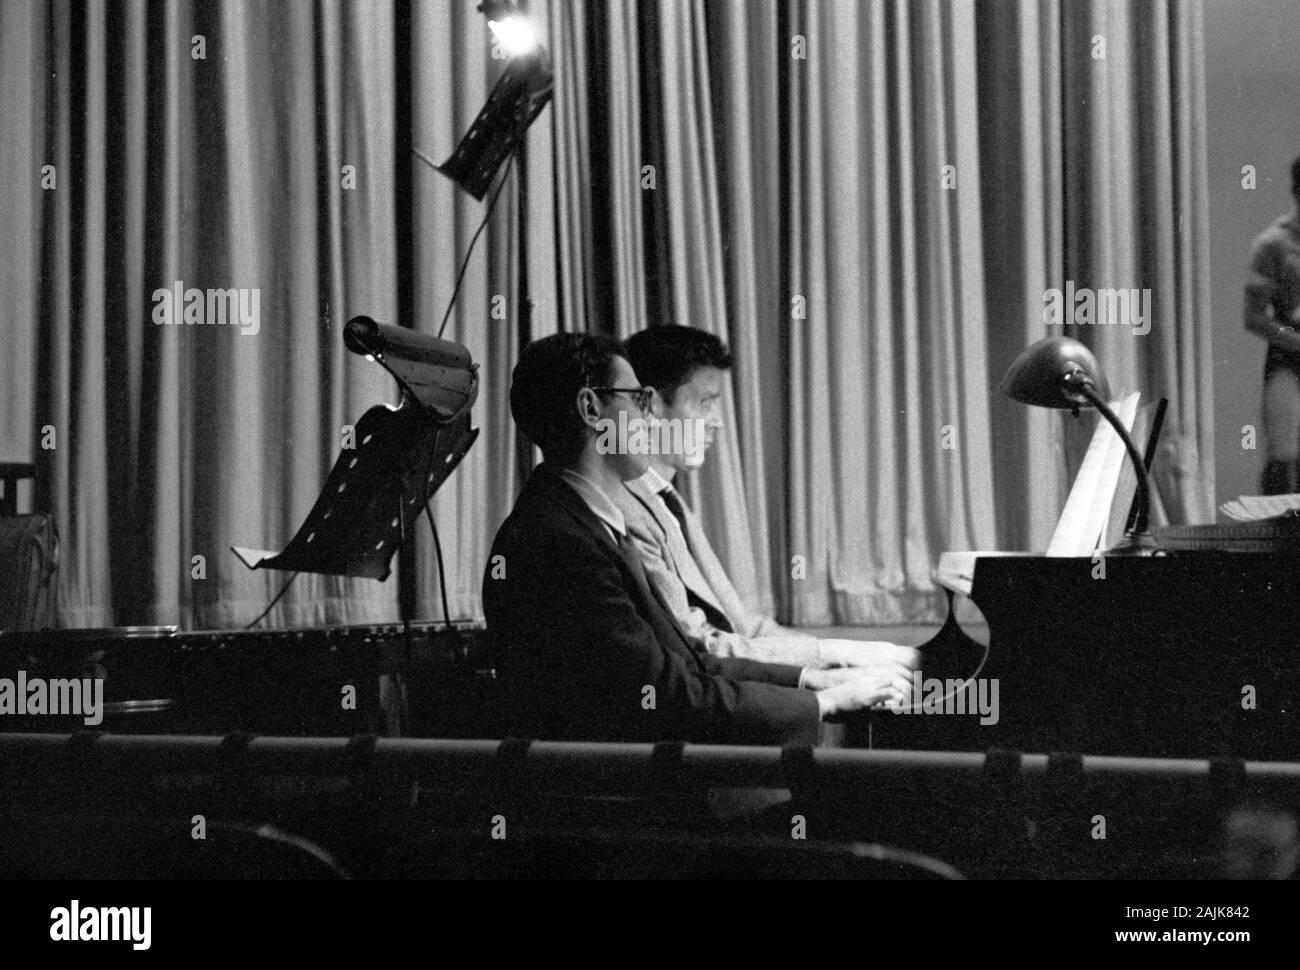 John Cage and David Tudor in performance in New York City, 1957, probably performing Winter Music. The exact date and venue are unknown. Stock Photo